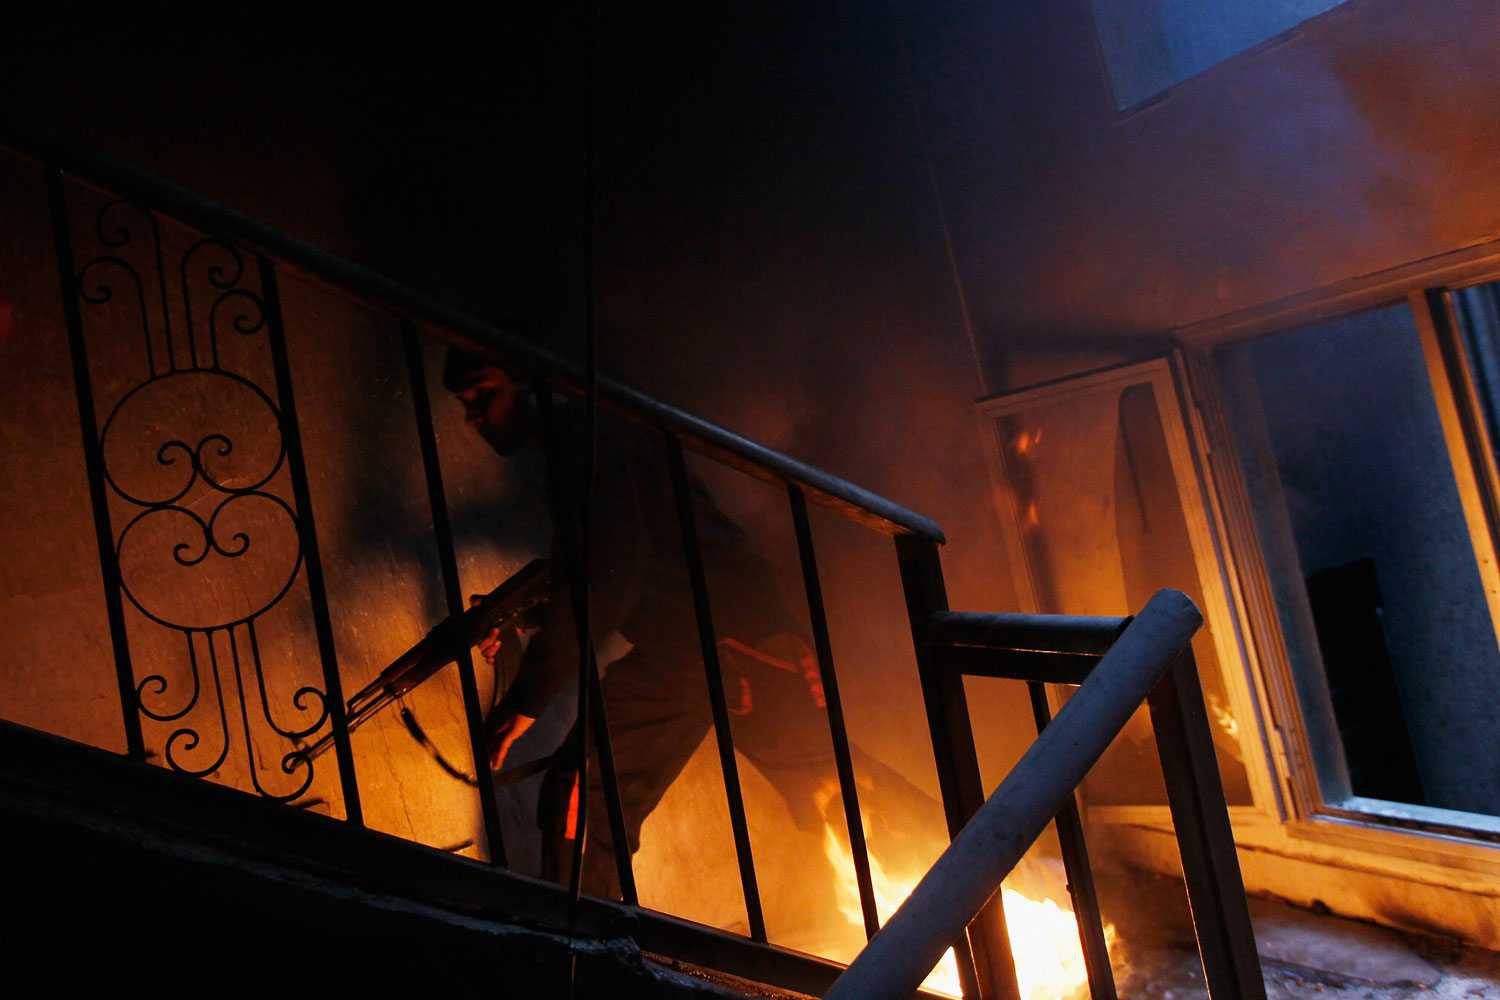 Misratah Libya April 20, 2011: A libyan rebel fighter runs up a burning stairwell during an effort to dislodge ensconced troops loyal to Moammar Gaddafi during house-to-house fighting on Tripoli Street in downtown Misratah, Libya.